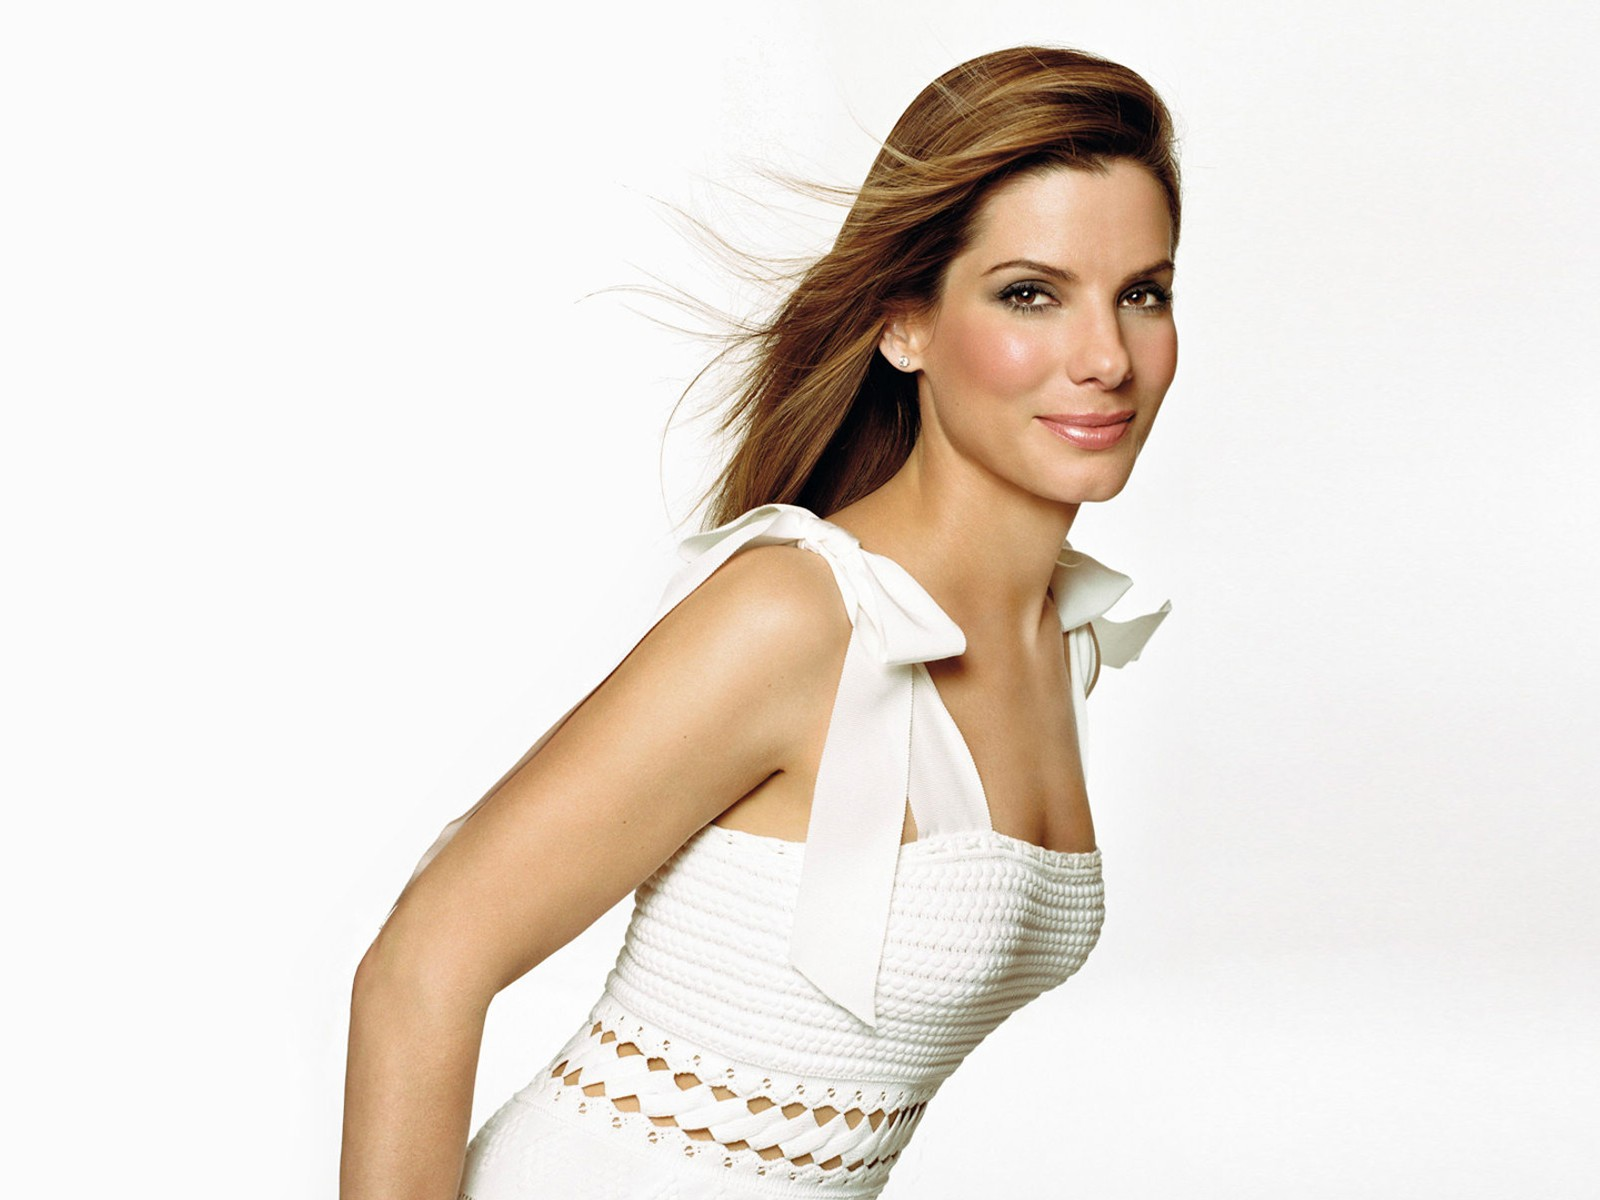 bullock single jewish girls Sandra bullock cuts her newly adopted son  bullock, who is not jewish,  as the article states she is going forward' with the adoption as a single parent.